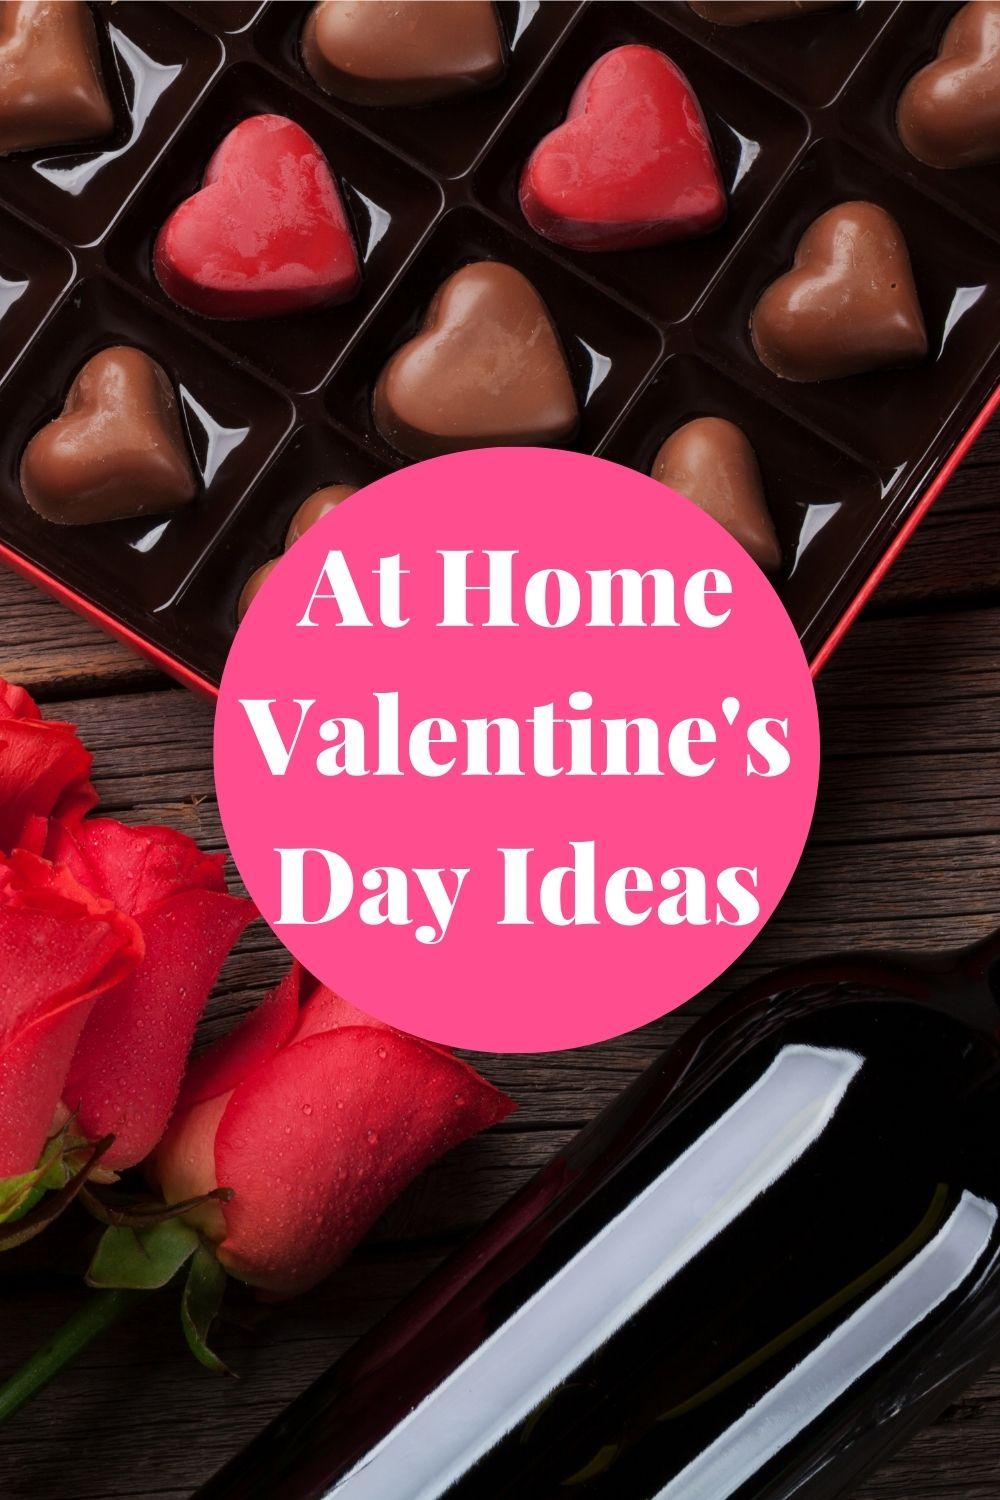 At Home Valentines Day Ideas